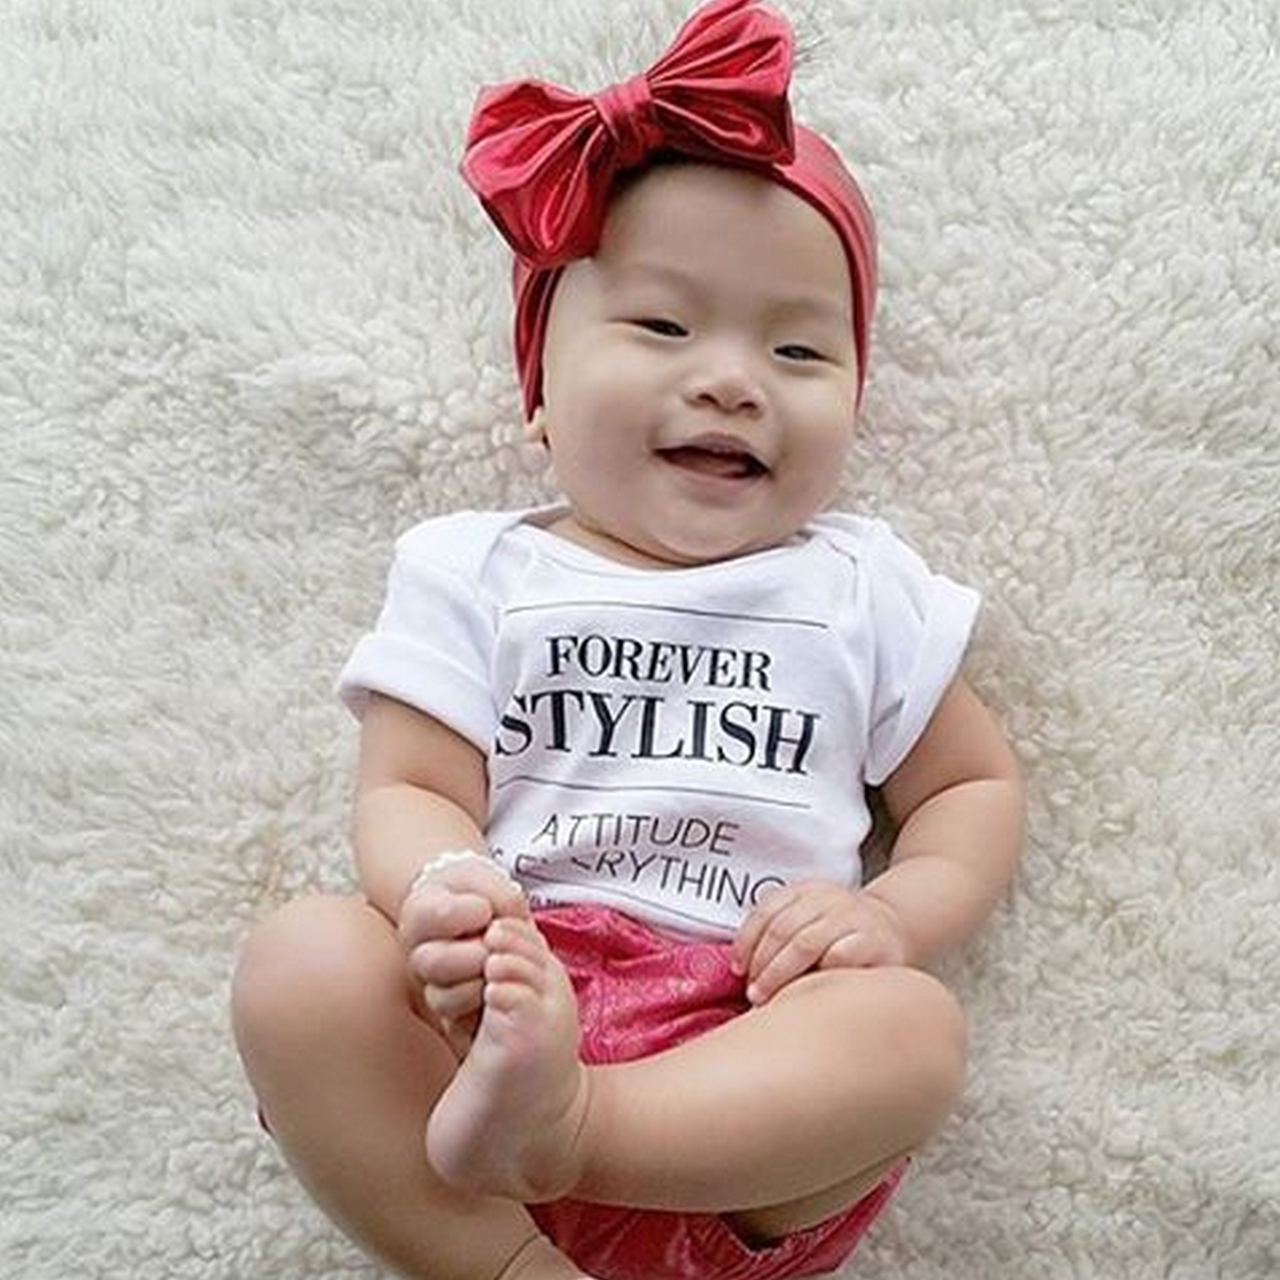 Forever STYLISH - Attitude is everything - Custom baby onesie for @annjenica